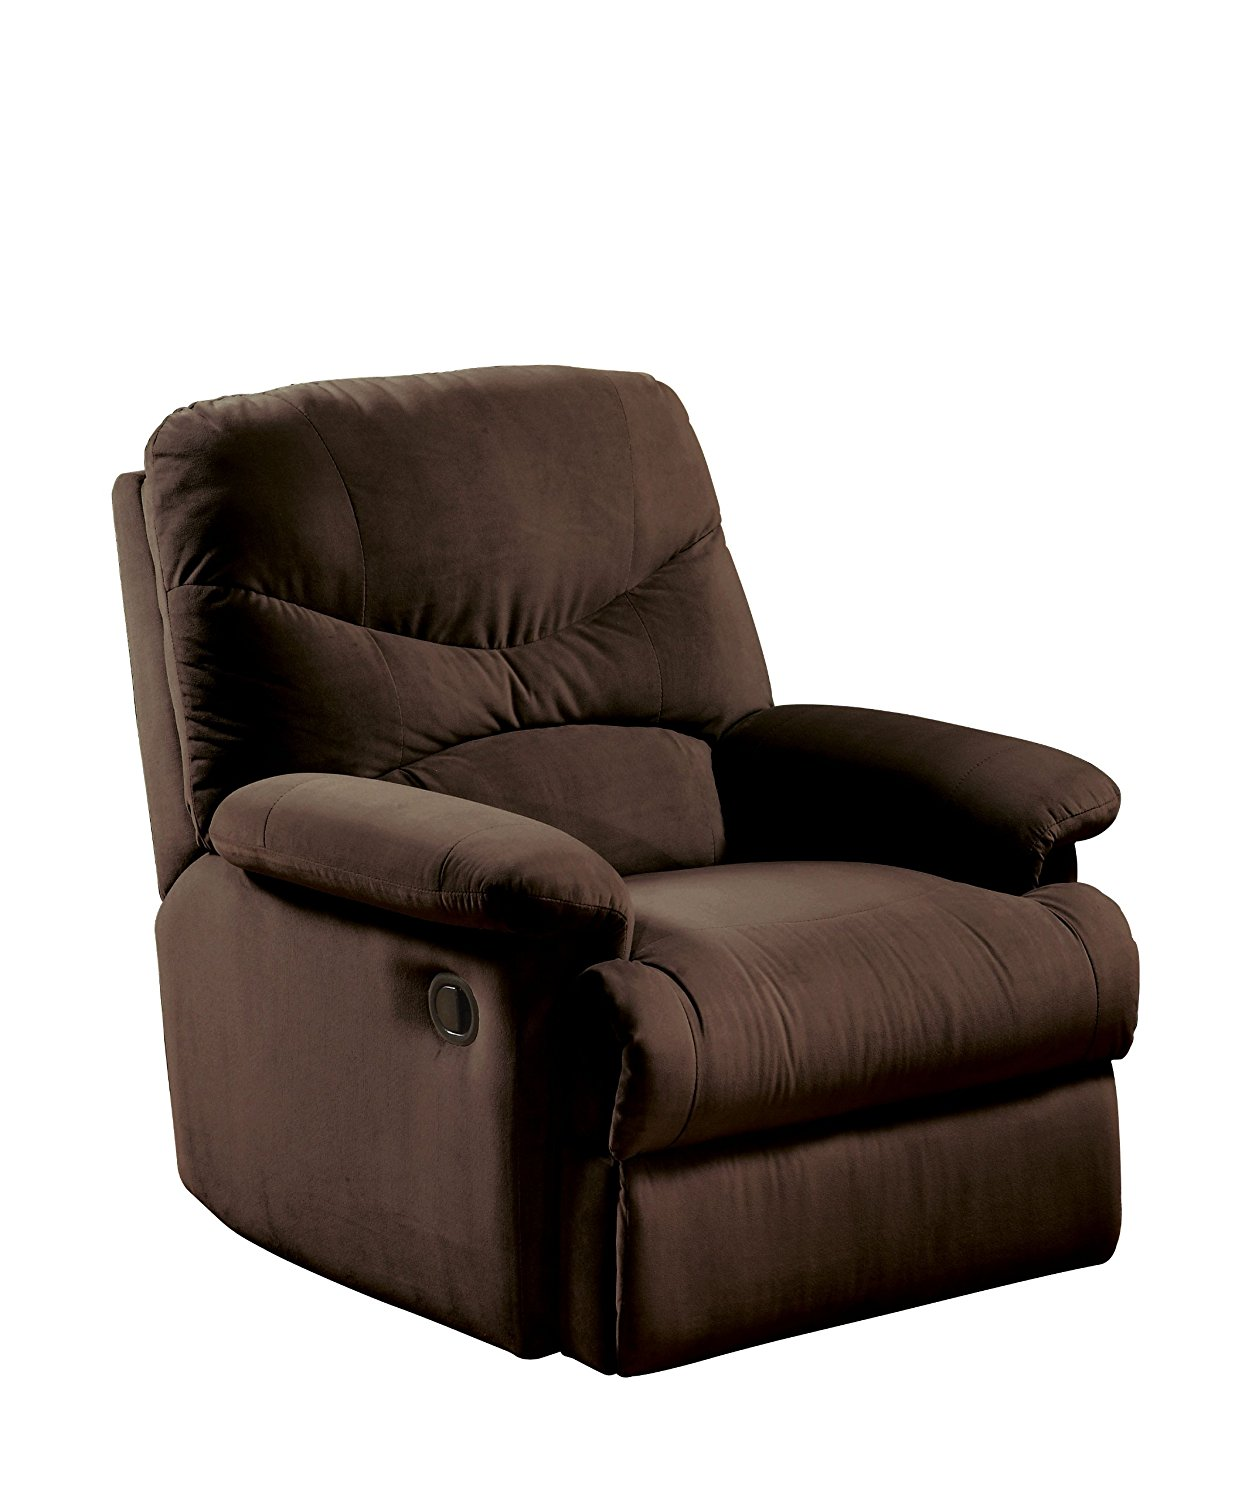 recliner chairs amazon.com: acme 00632 arcadia recliner, oakwood chocolate microfiber:  kitchen u0026 dining DCUIVOH